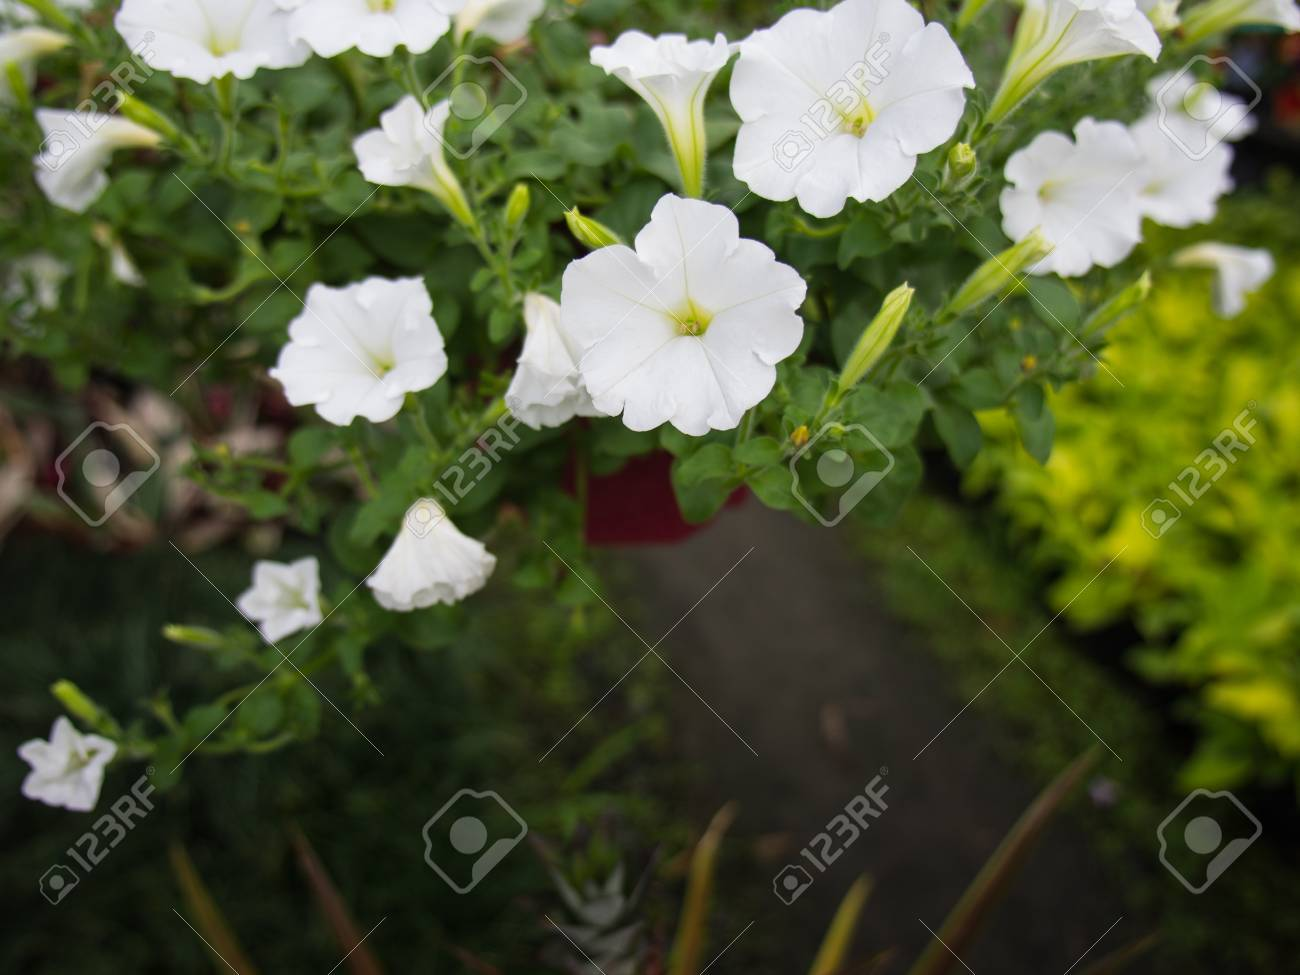 White Petunia Flowers Hanging In The Garden Stock Photo Picture And